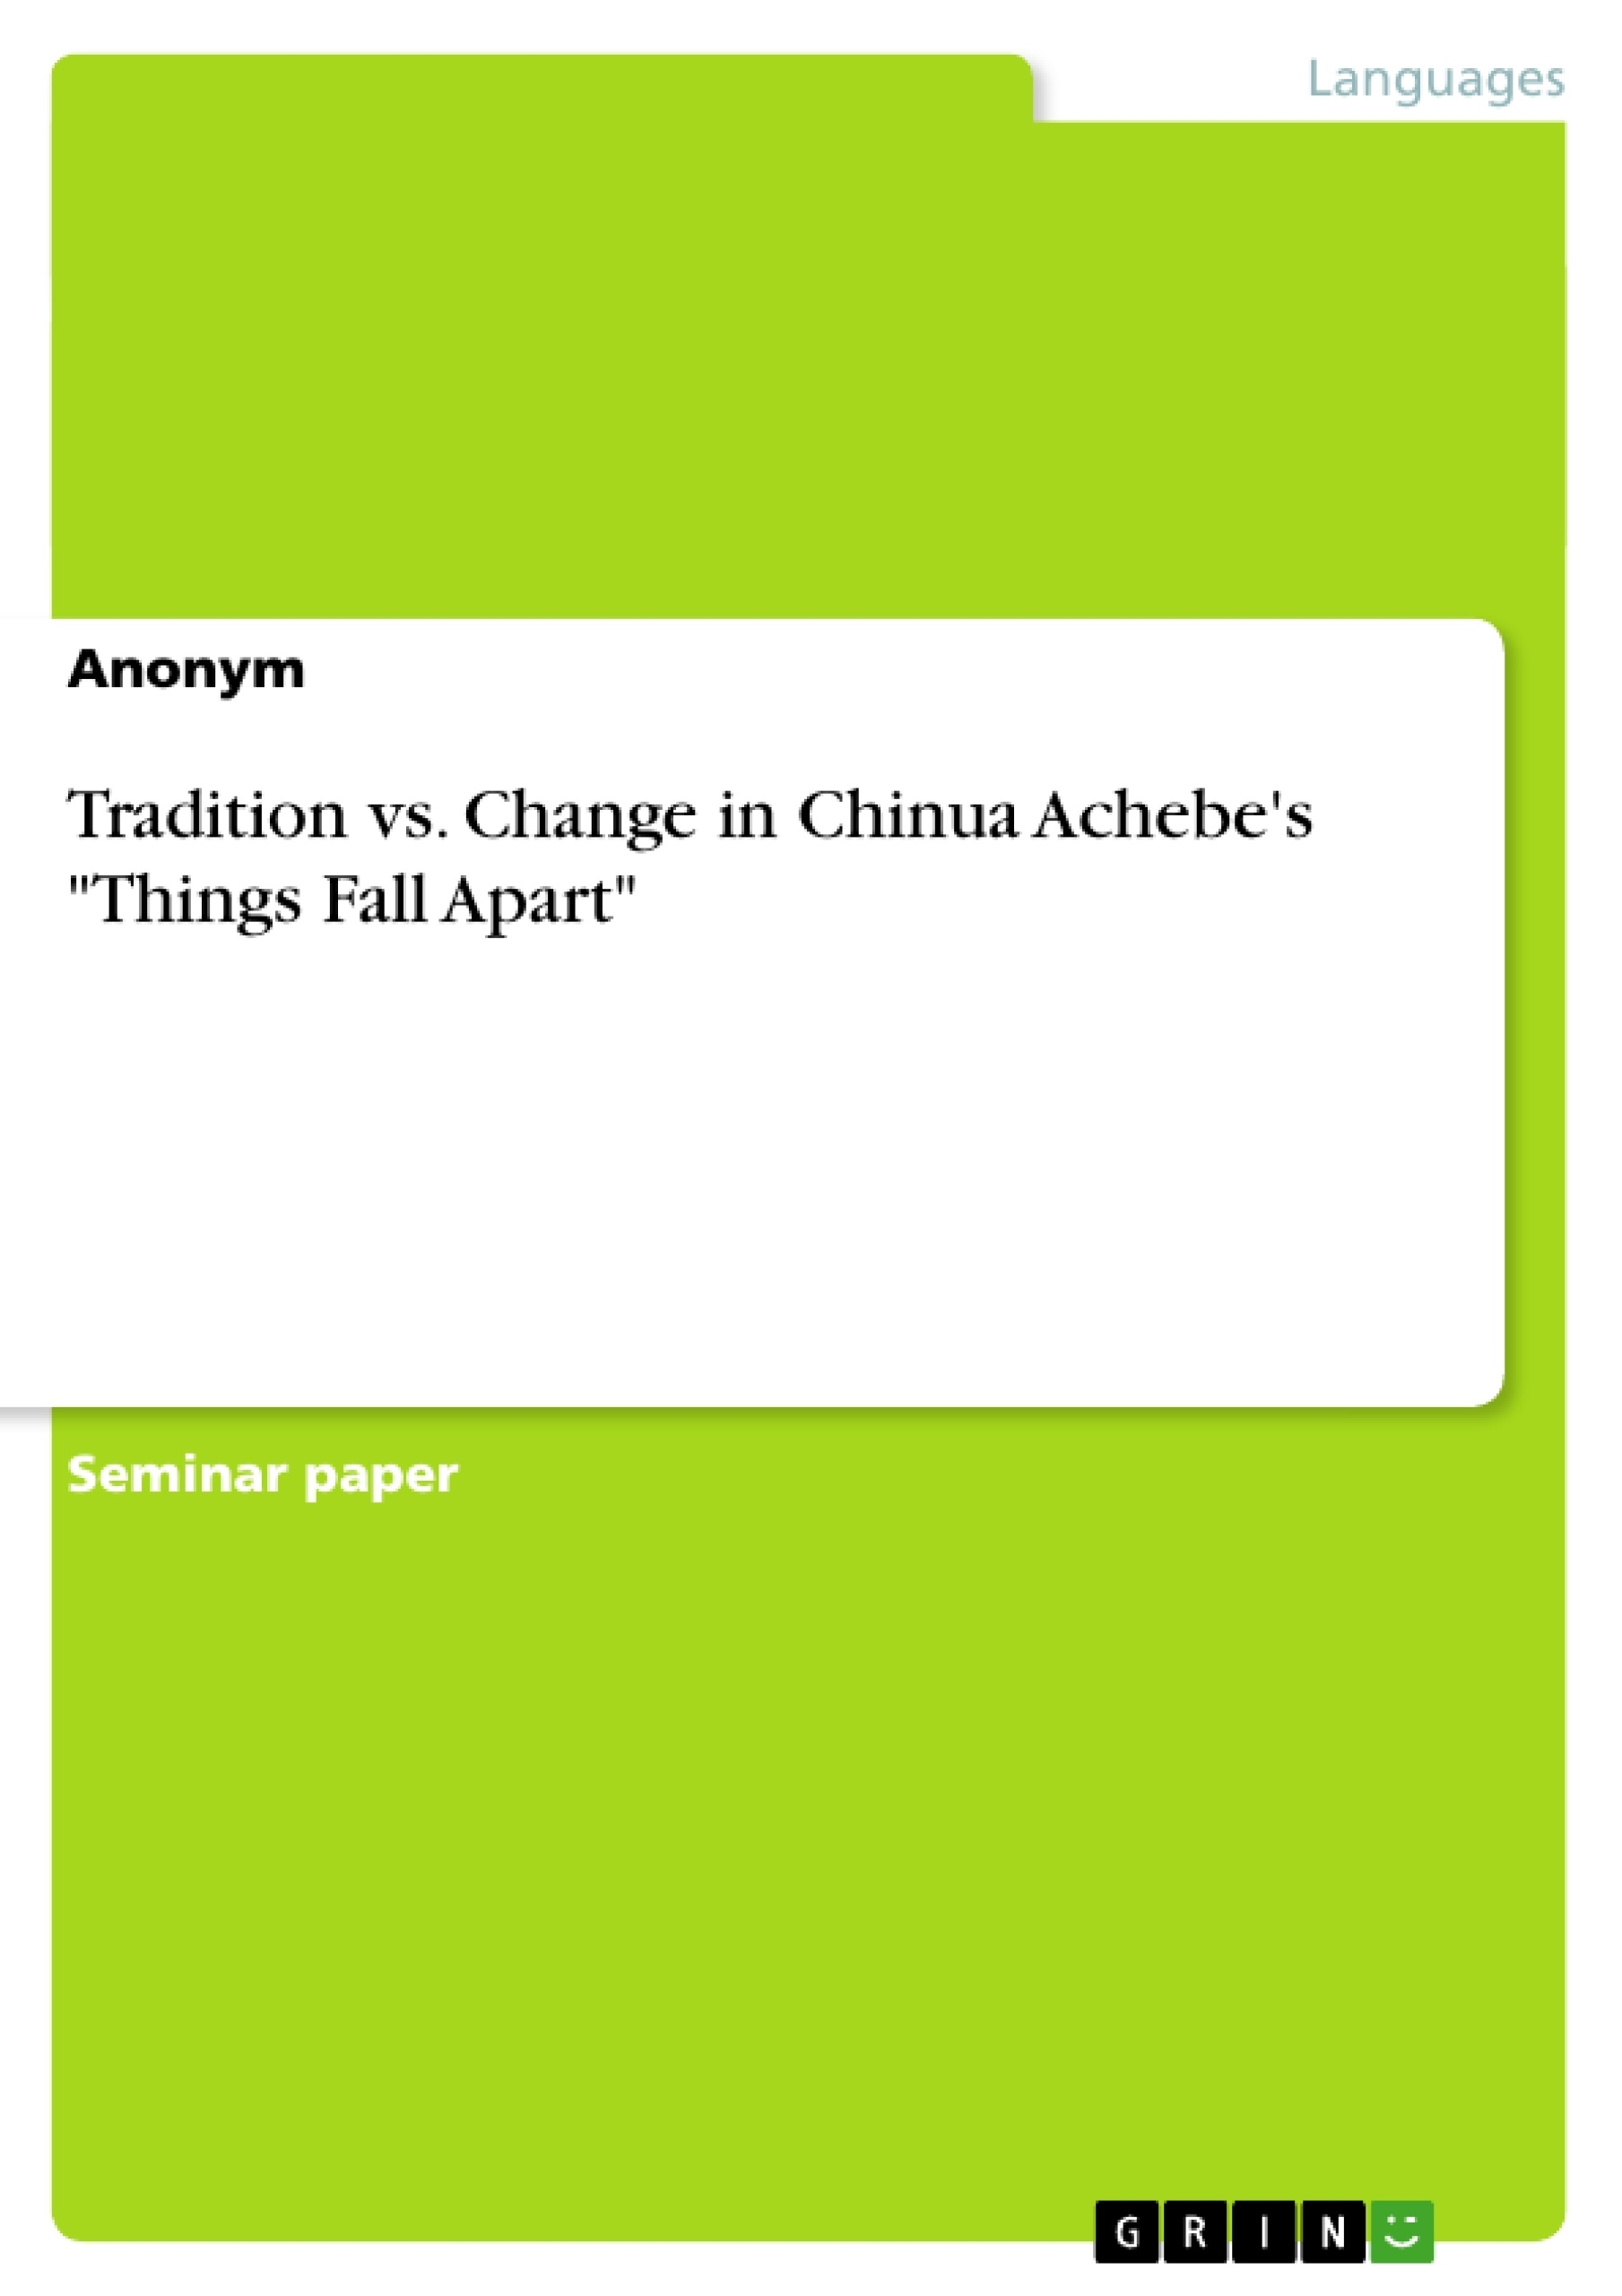 tradition essay sample essays photo essay an italian family  tradition vs change in chinua achebe s things fall apart tradition vs change in chinua achebe